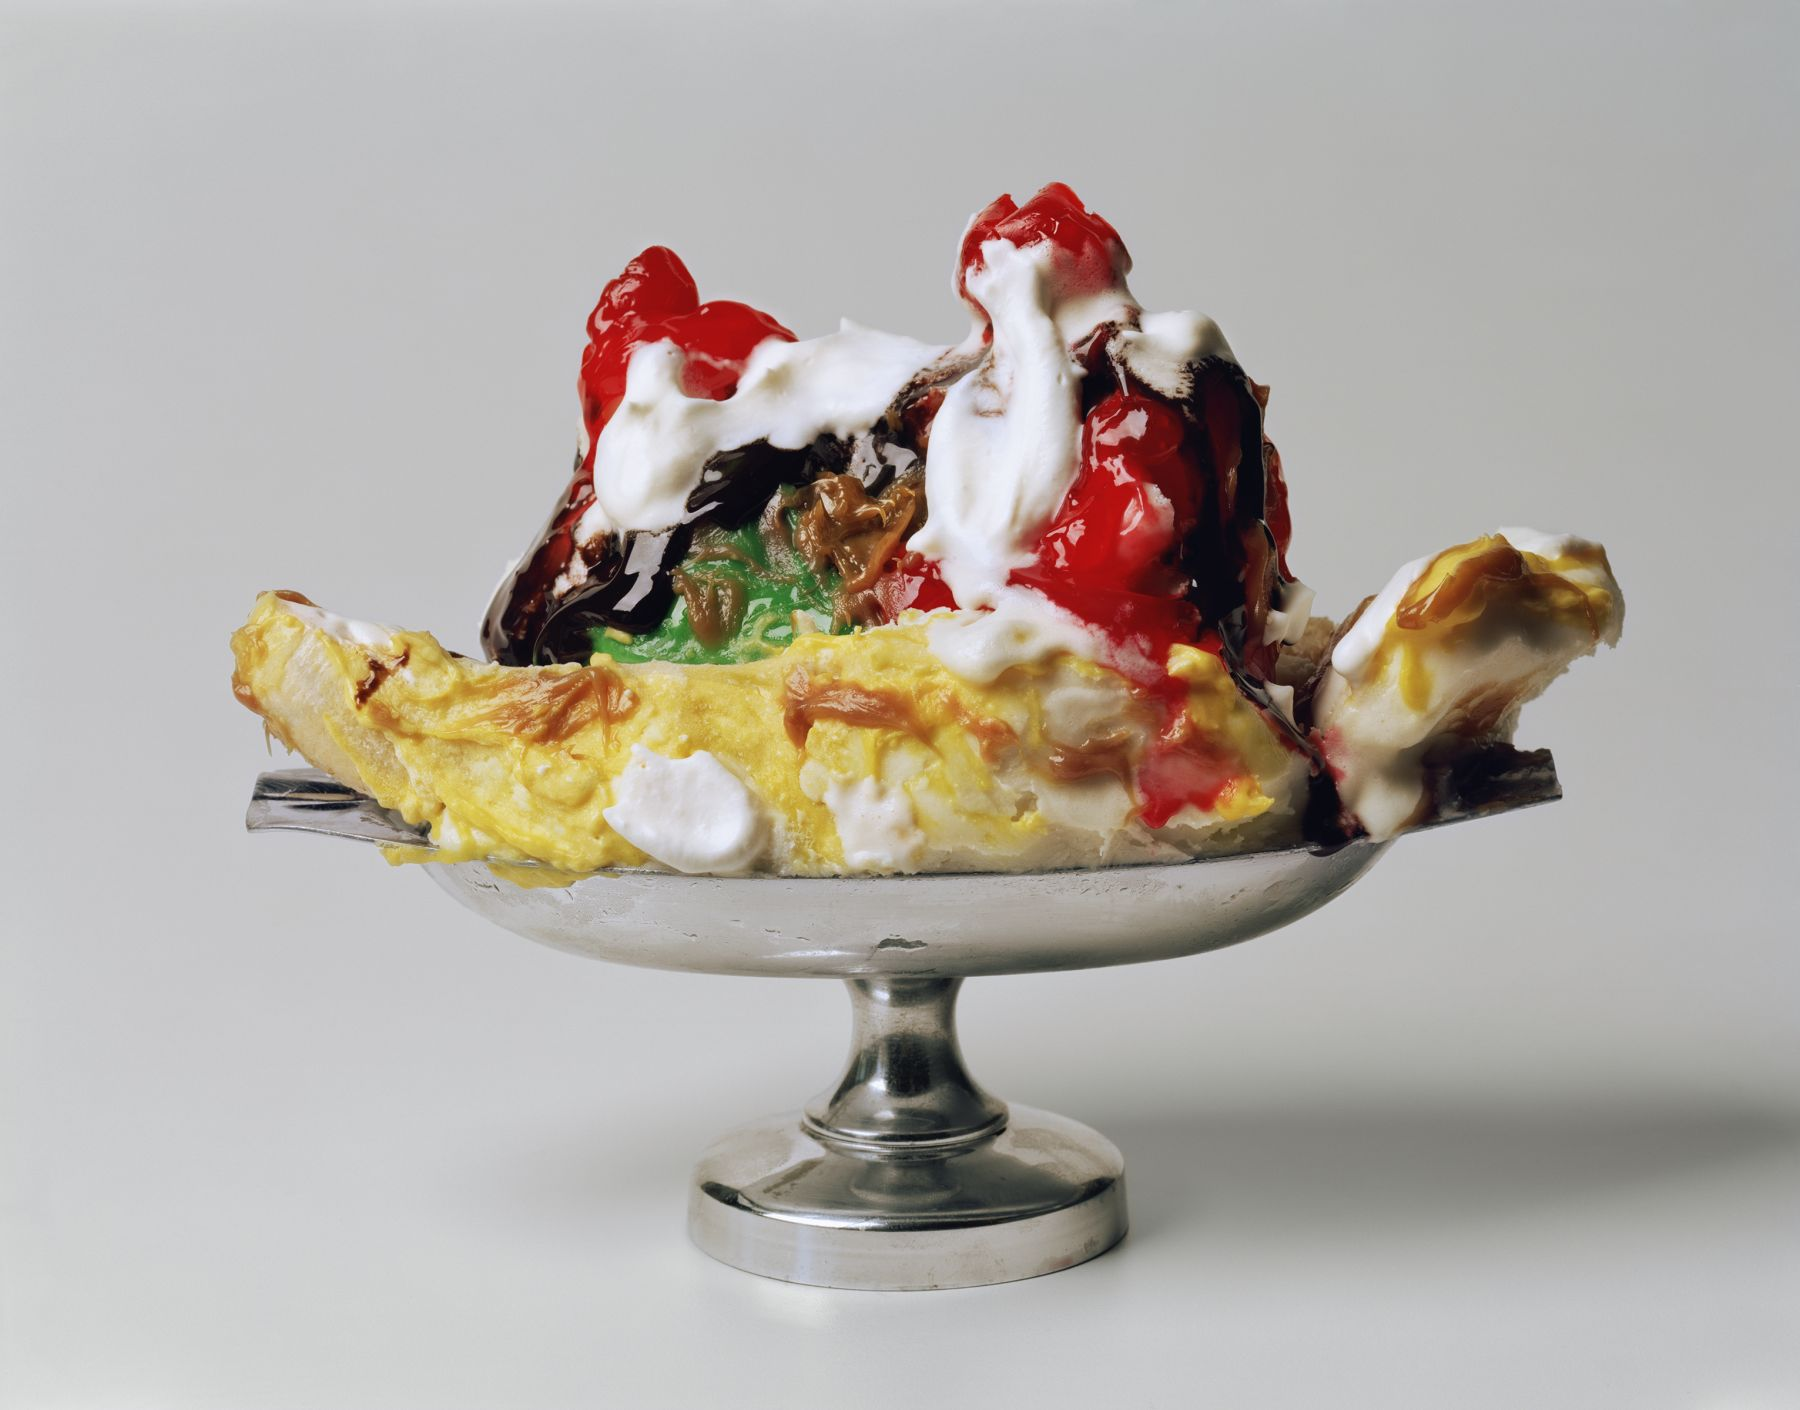 Photograph by Sharon Core of a banana split sundae in a silver dish arranged to look like the sculpture by Claes Oldenburg.